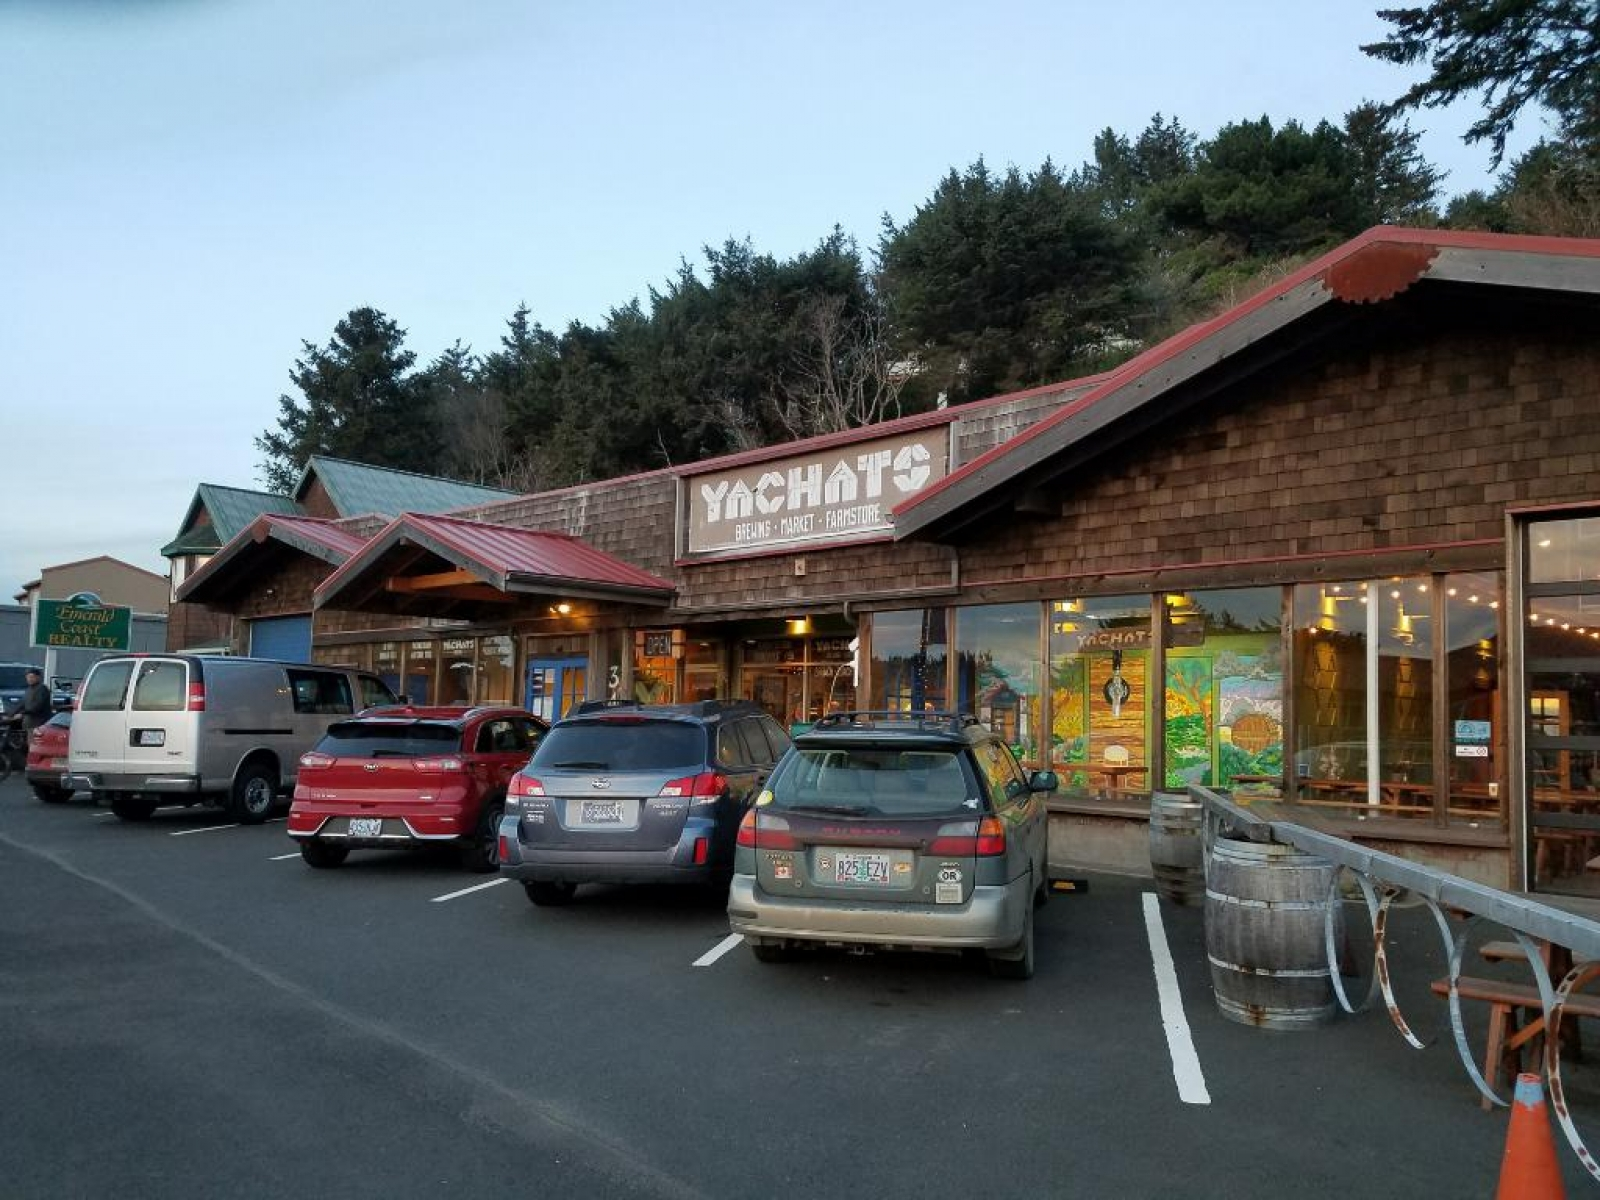 Yachats parking & entry